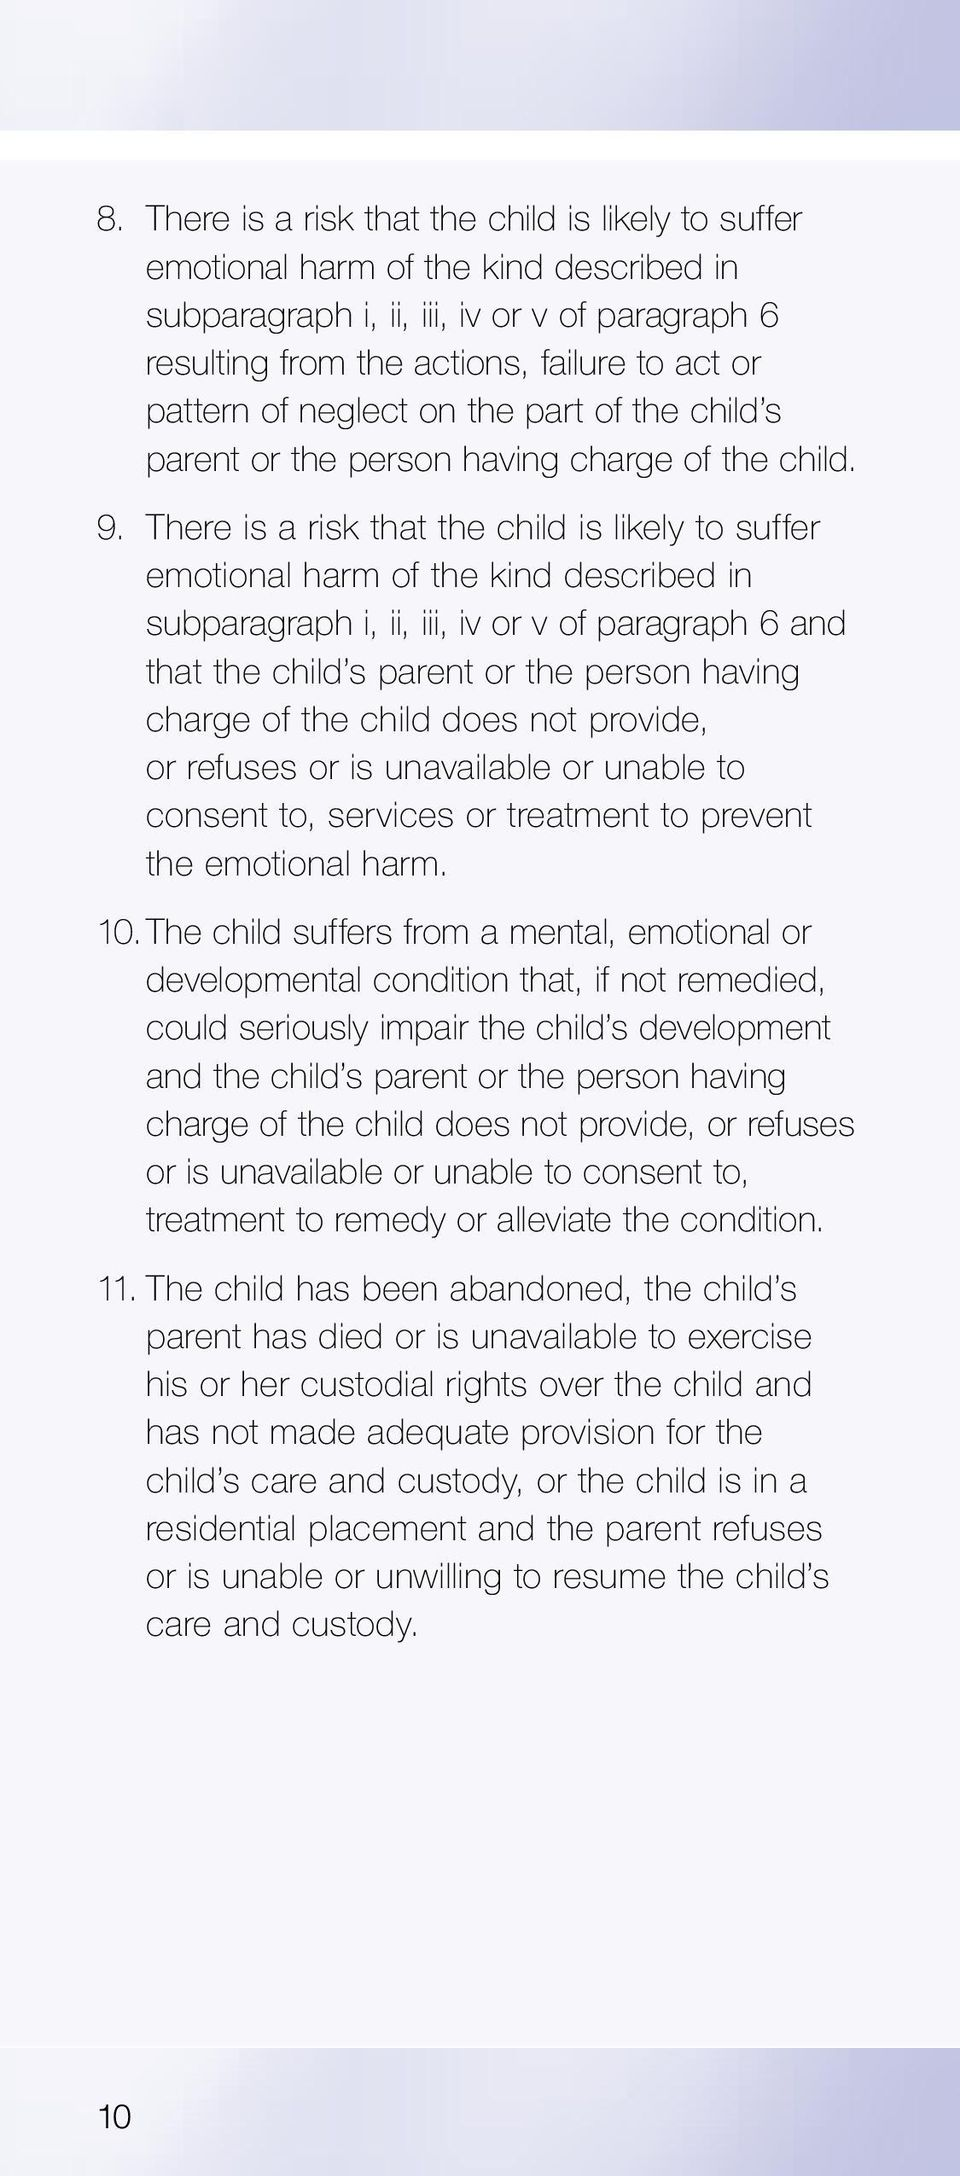 There is a risk that the child is likely to suffer emotional harm of the kind described in subparagraph i, ii, iii, iv or v of paragraph 6 and that the child s parent or the person having charge of